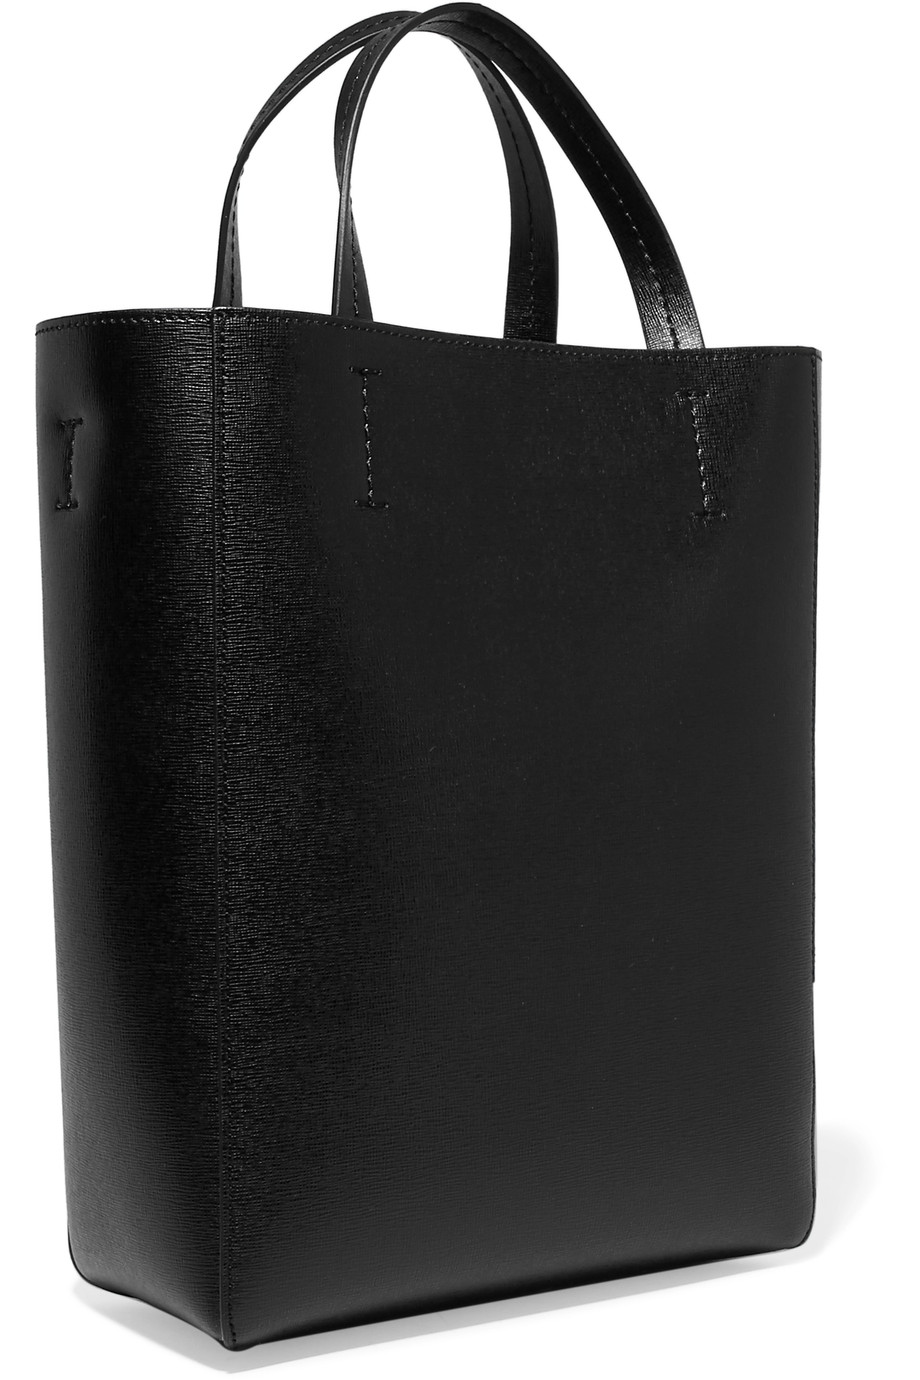 Leather tote.jpg